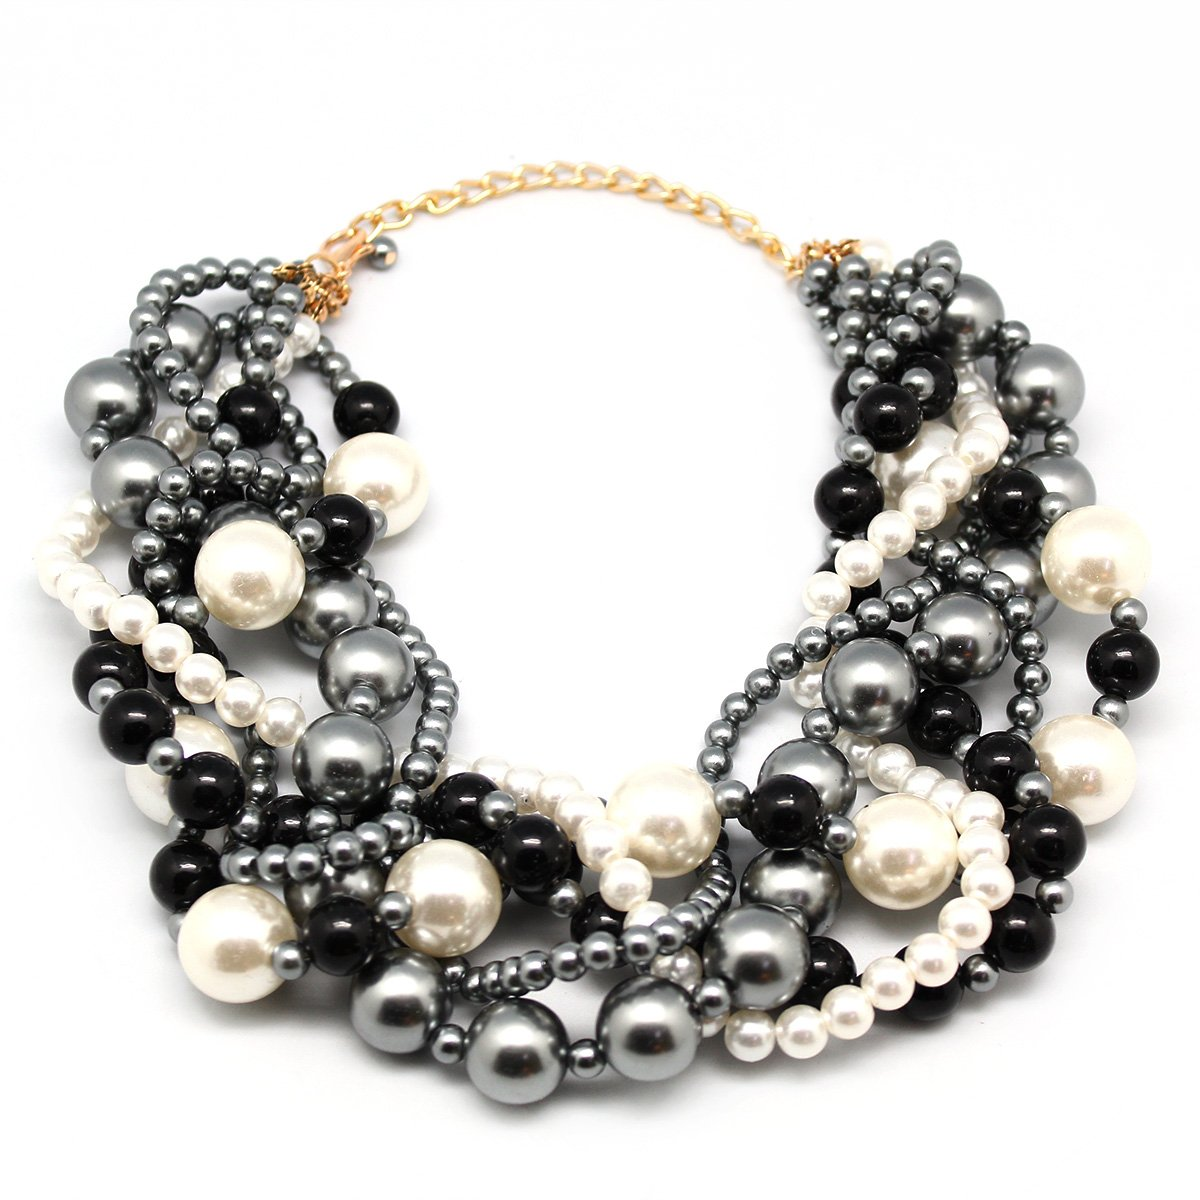 MeliMe Women's Imitation Pearl Twisty Chunky Bib Necklace Pearl Chokers for Wedding Party by MeliMe (Image #1)